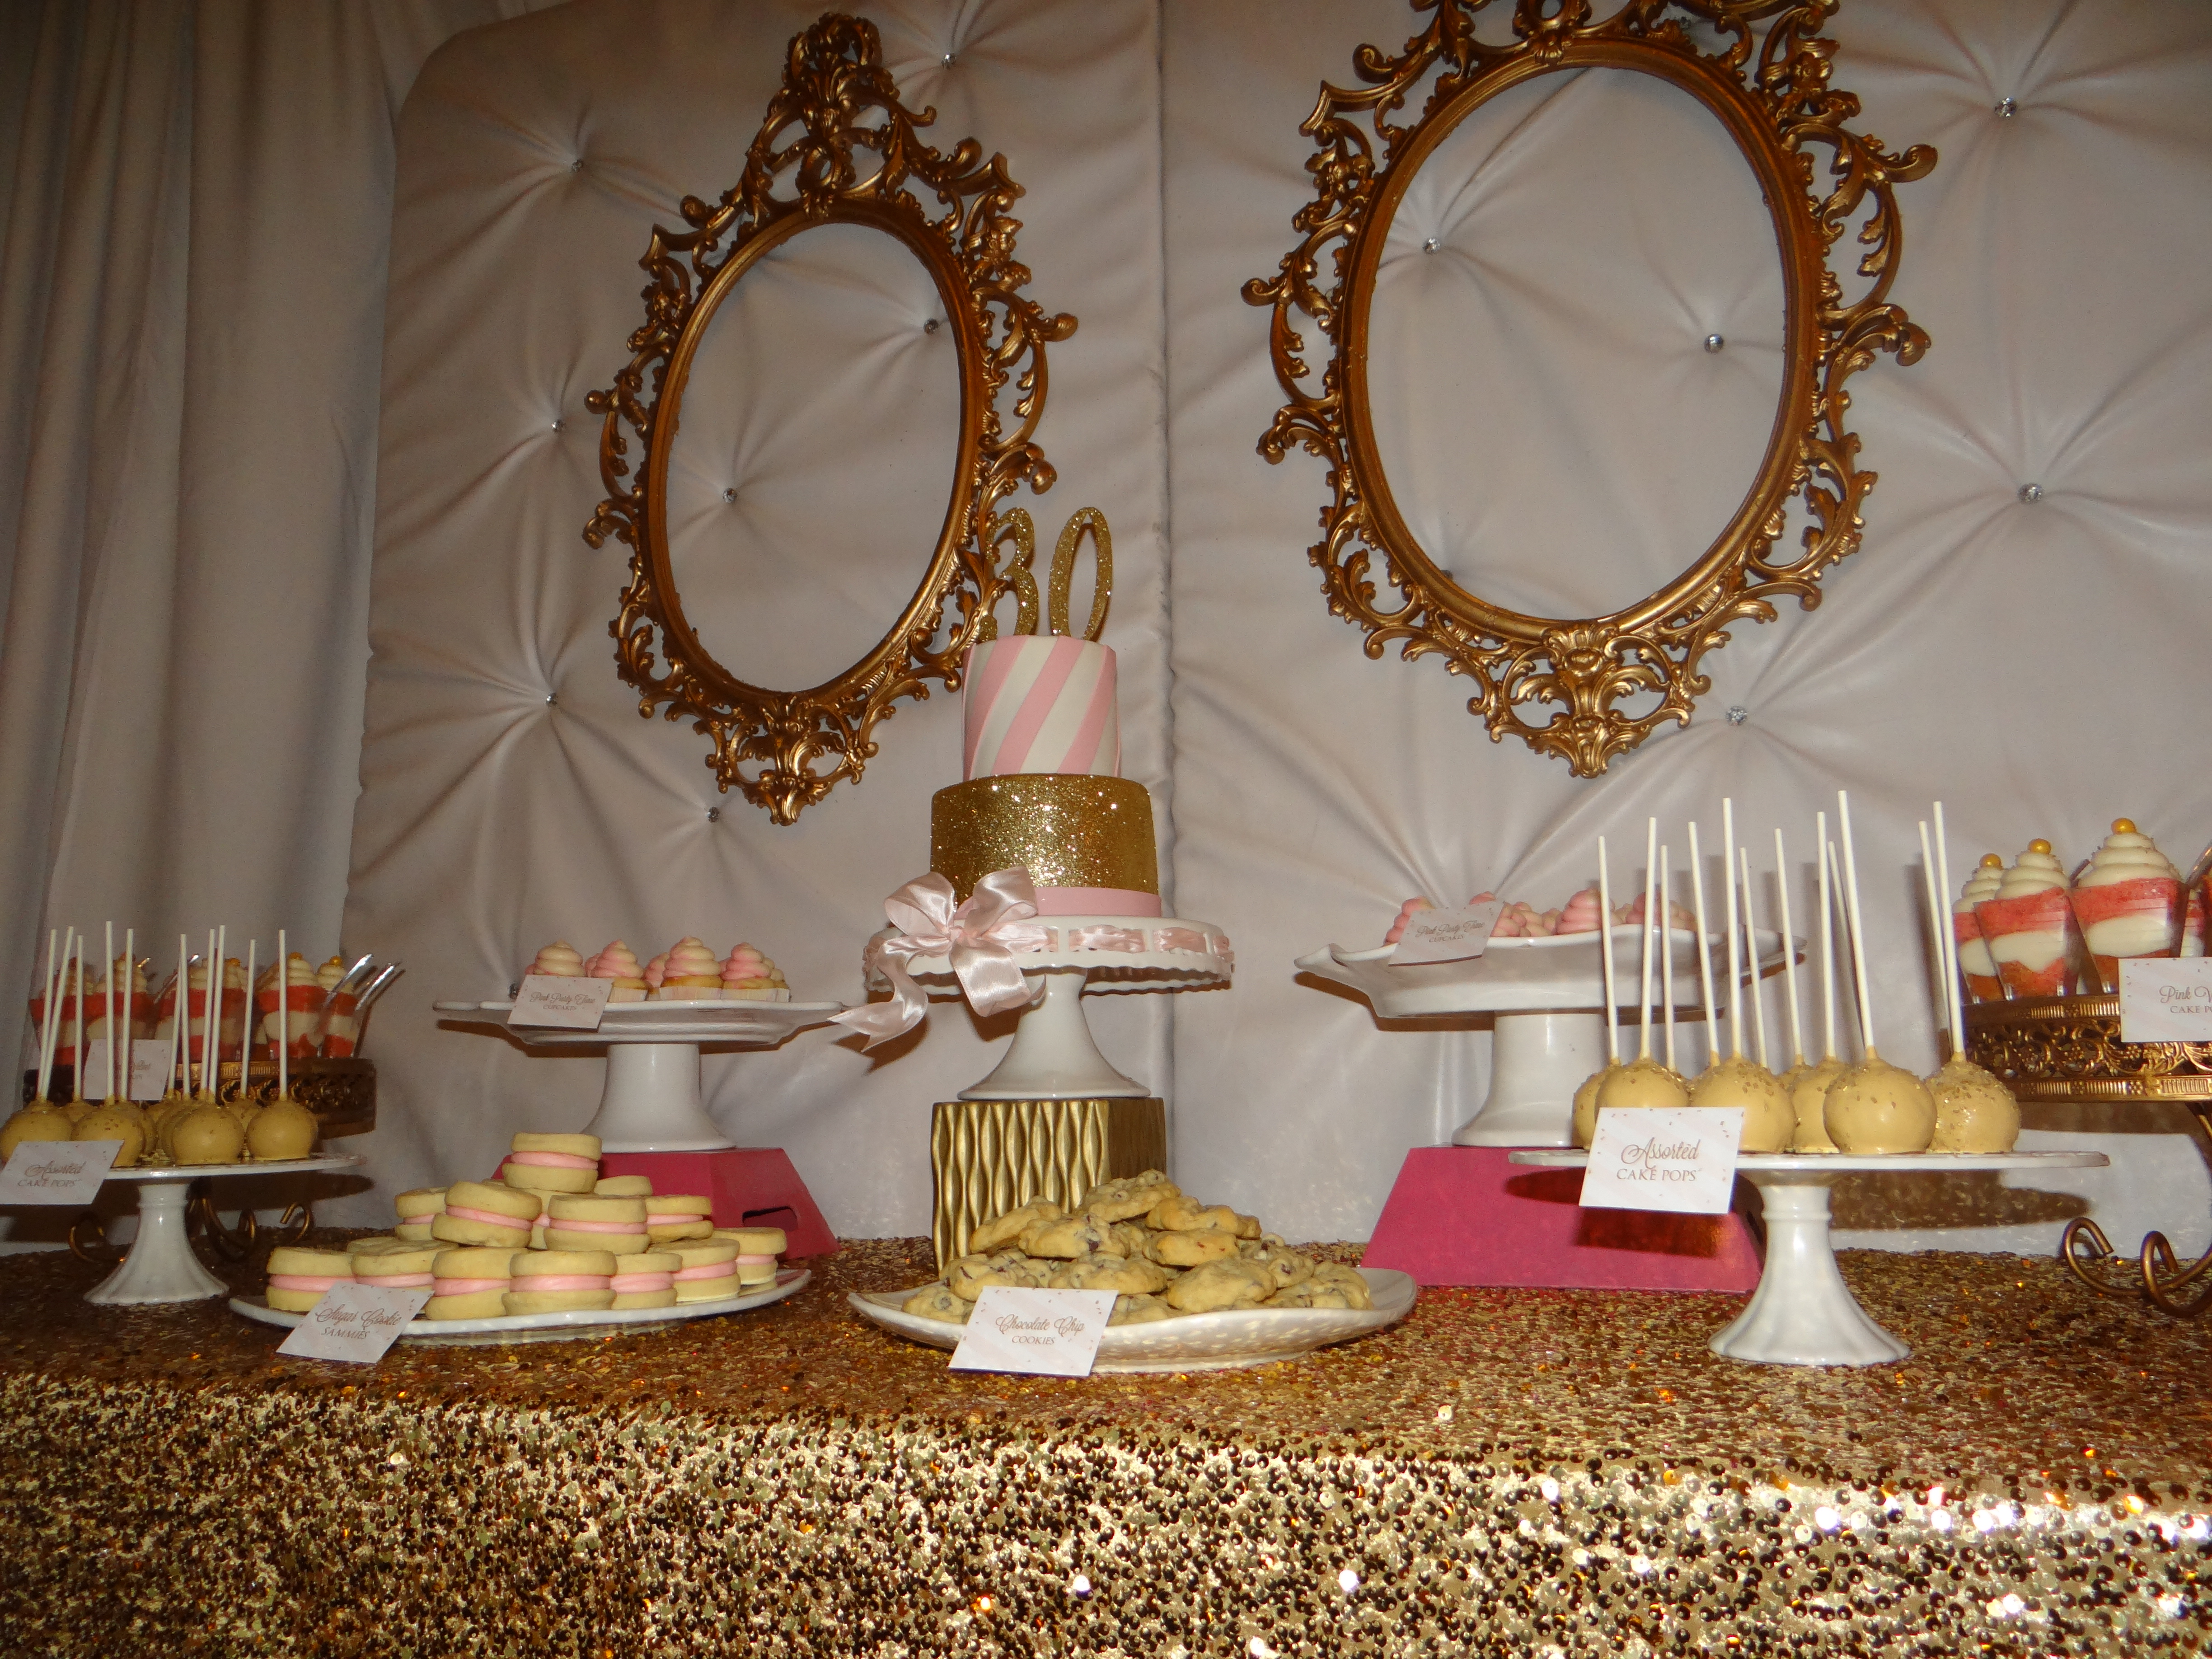 A Poppin39 30th Birthday 24 7 Events & 30th Birthday Party Decoration Ideas - Elitflat